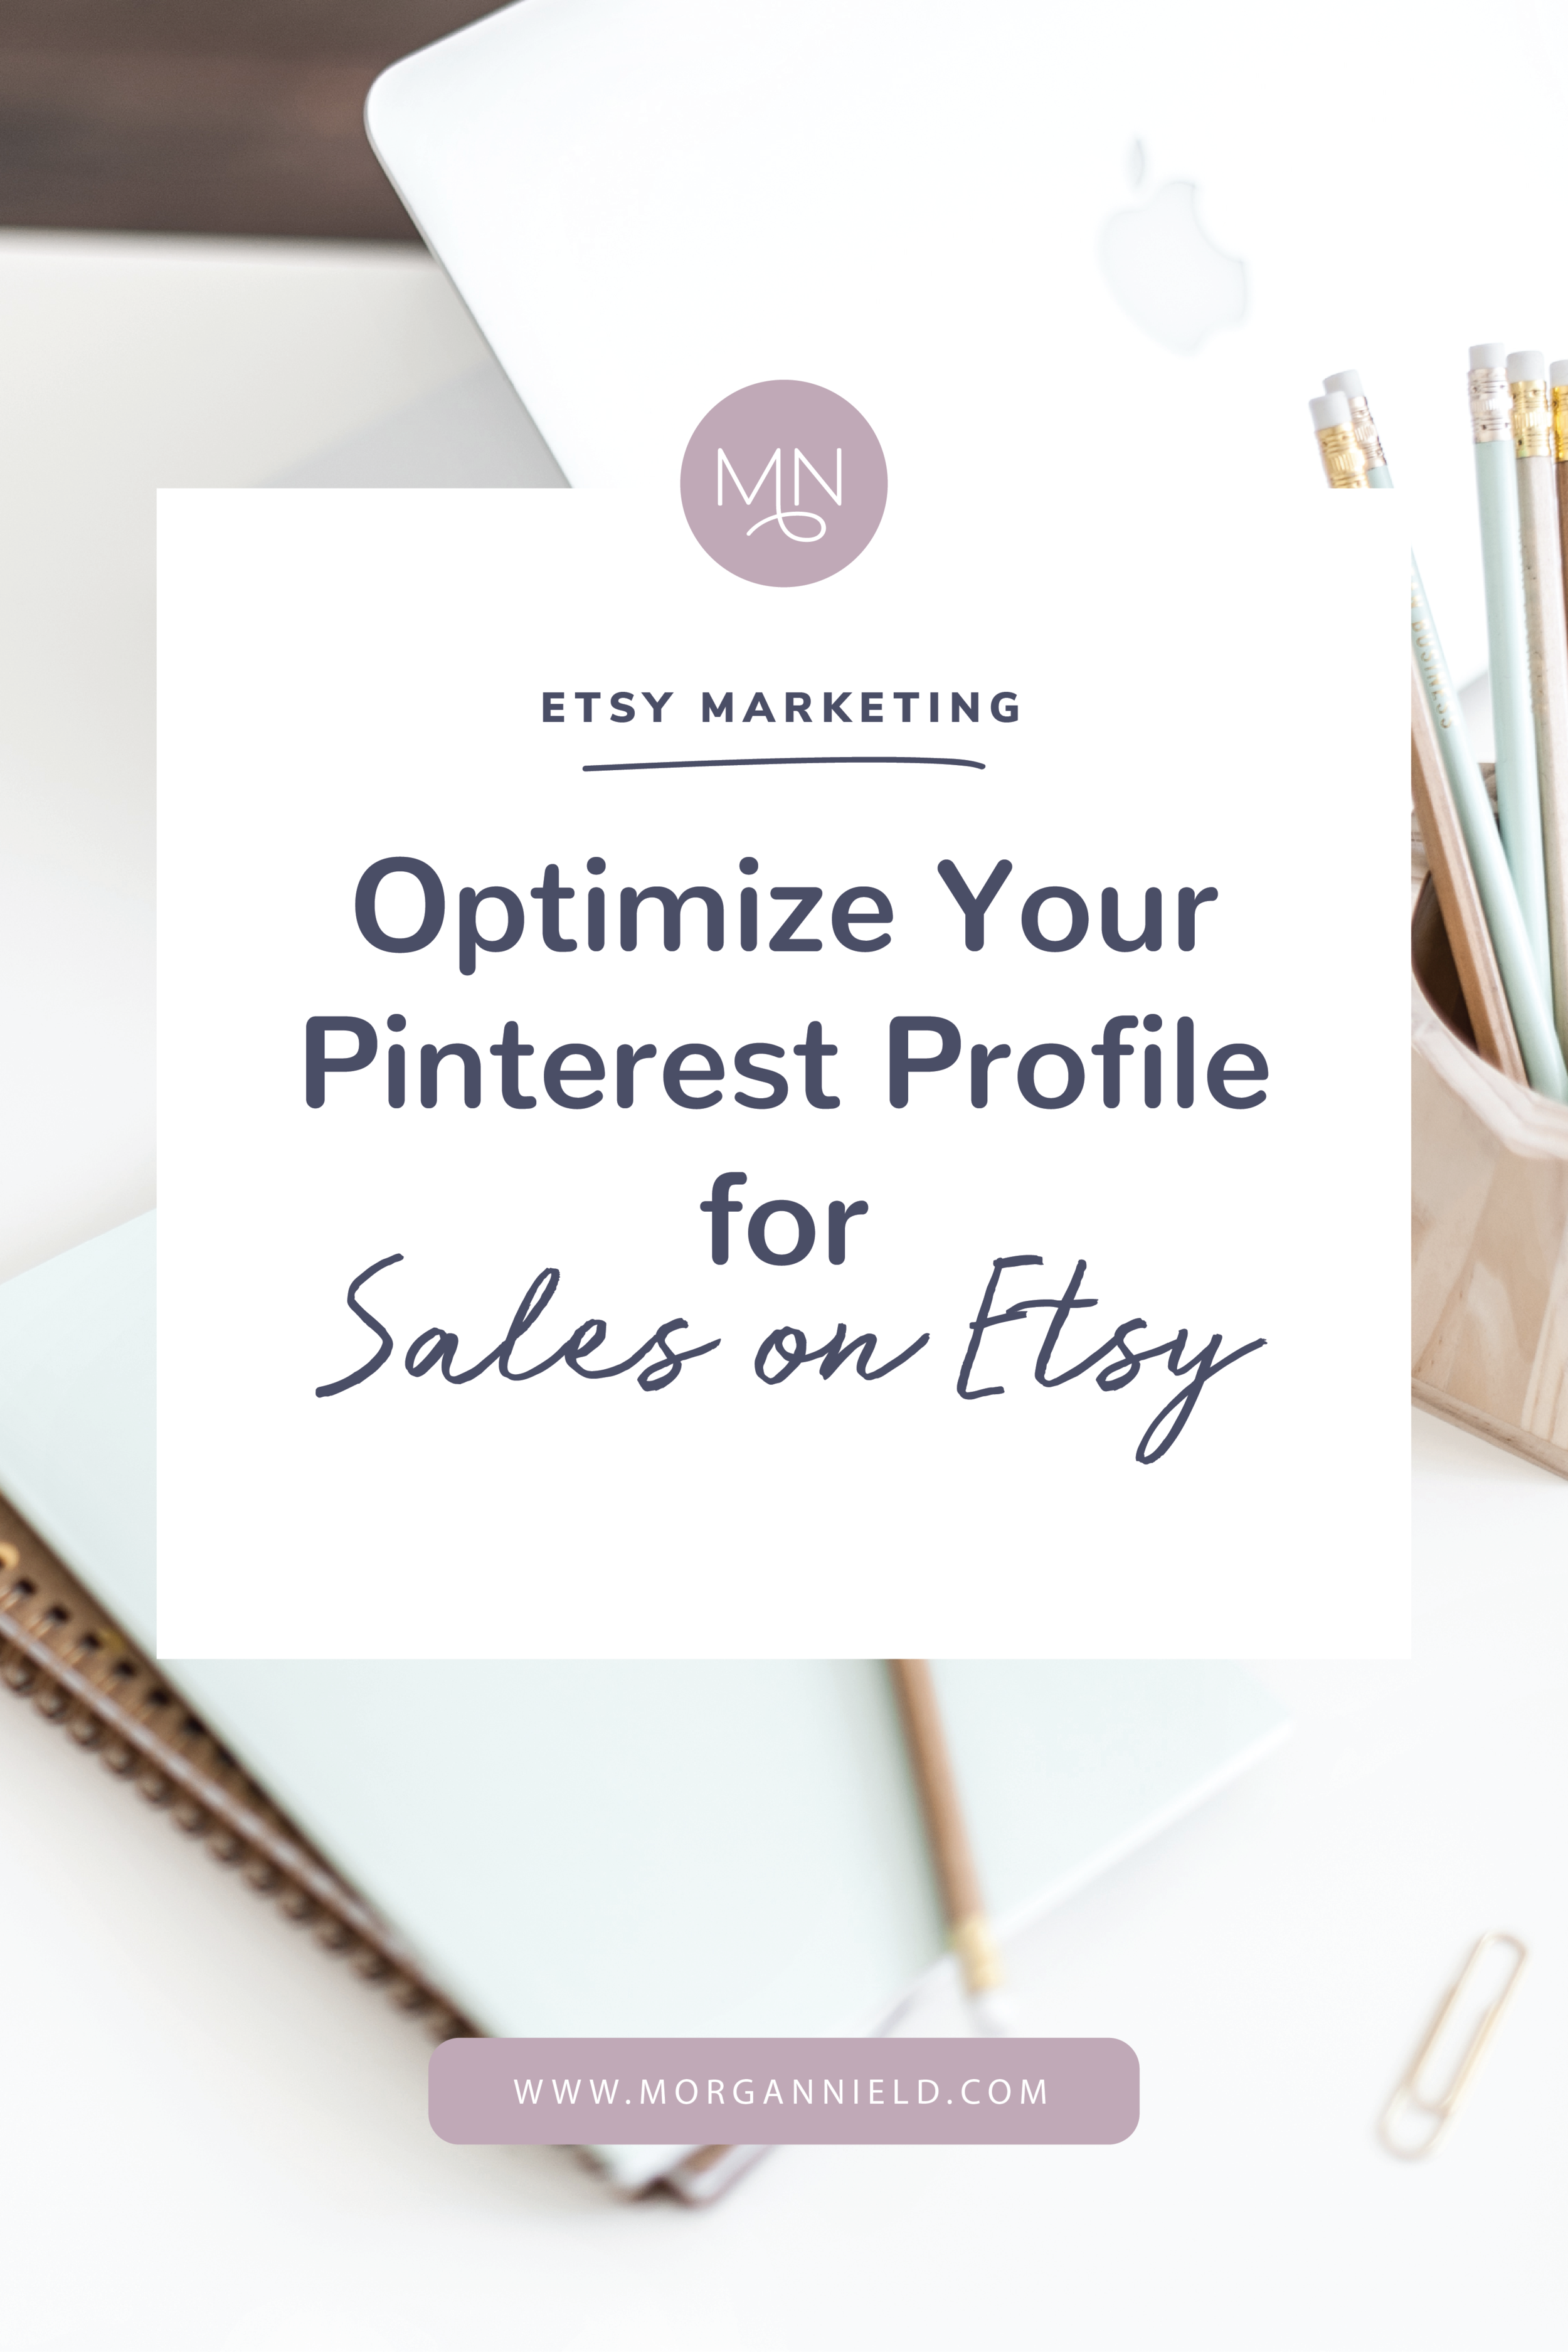 [B]_Optimize_Your_Pinterest_Profile_for_Sales_on_Etsy-02.png